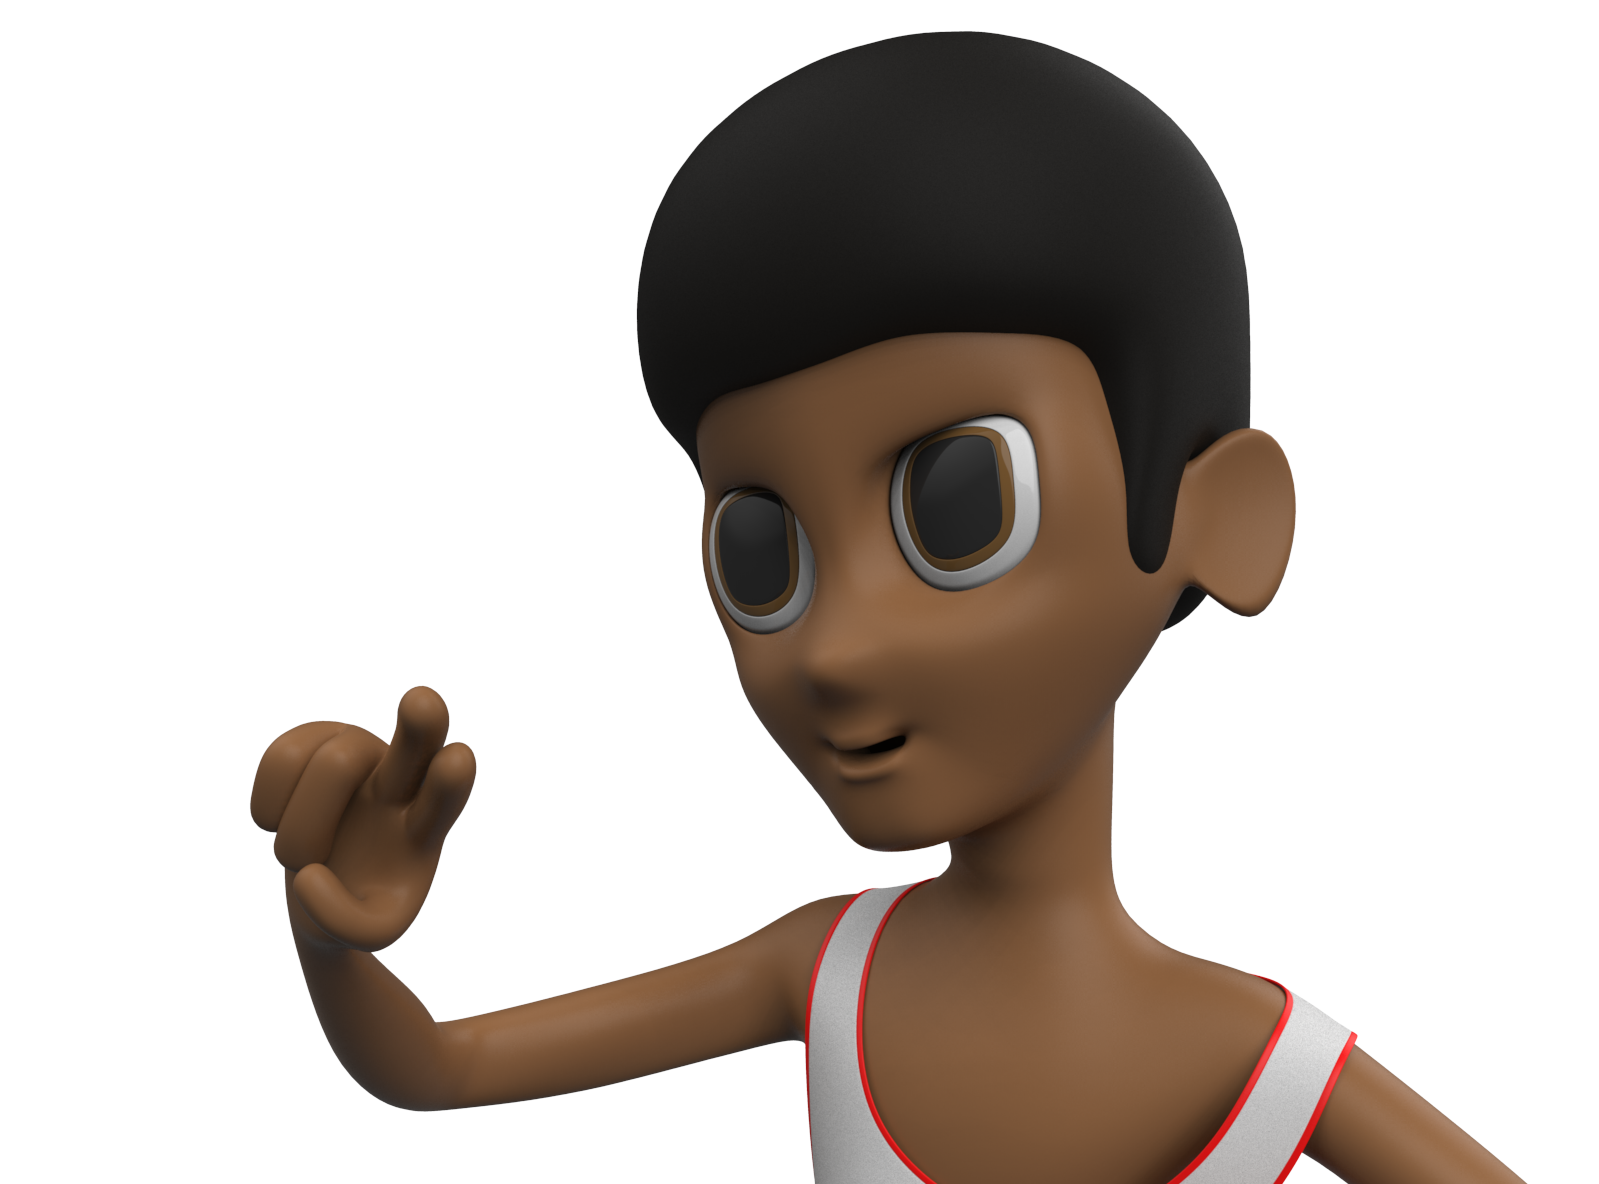 Brandon the Baller - 3D design by meshtush on Jan 20, 2018